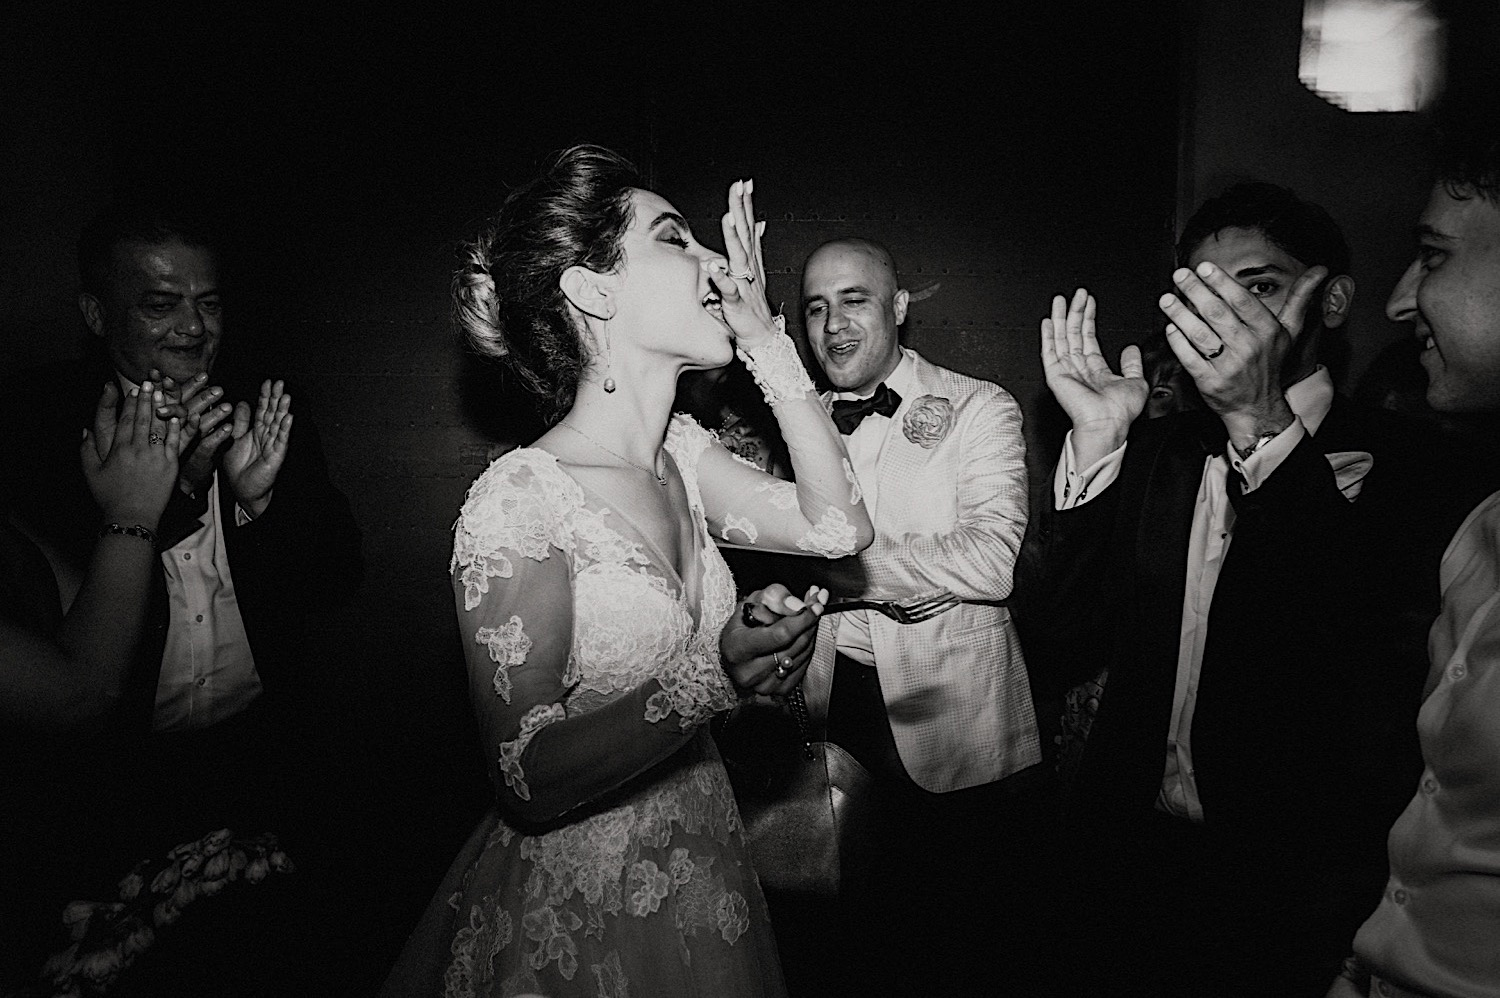 weddingphotographersevilla-persianwedding-ernestovillalba-0085.JPG